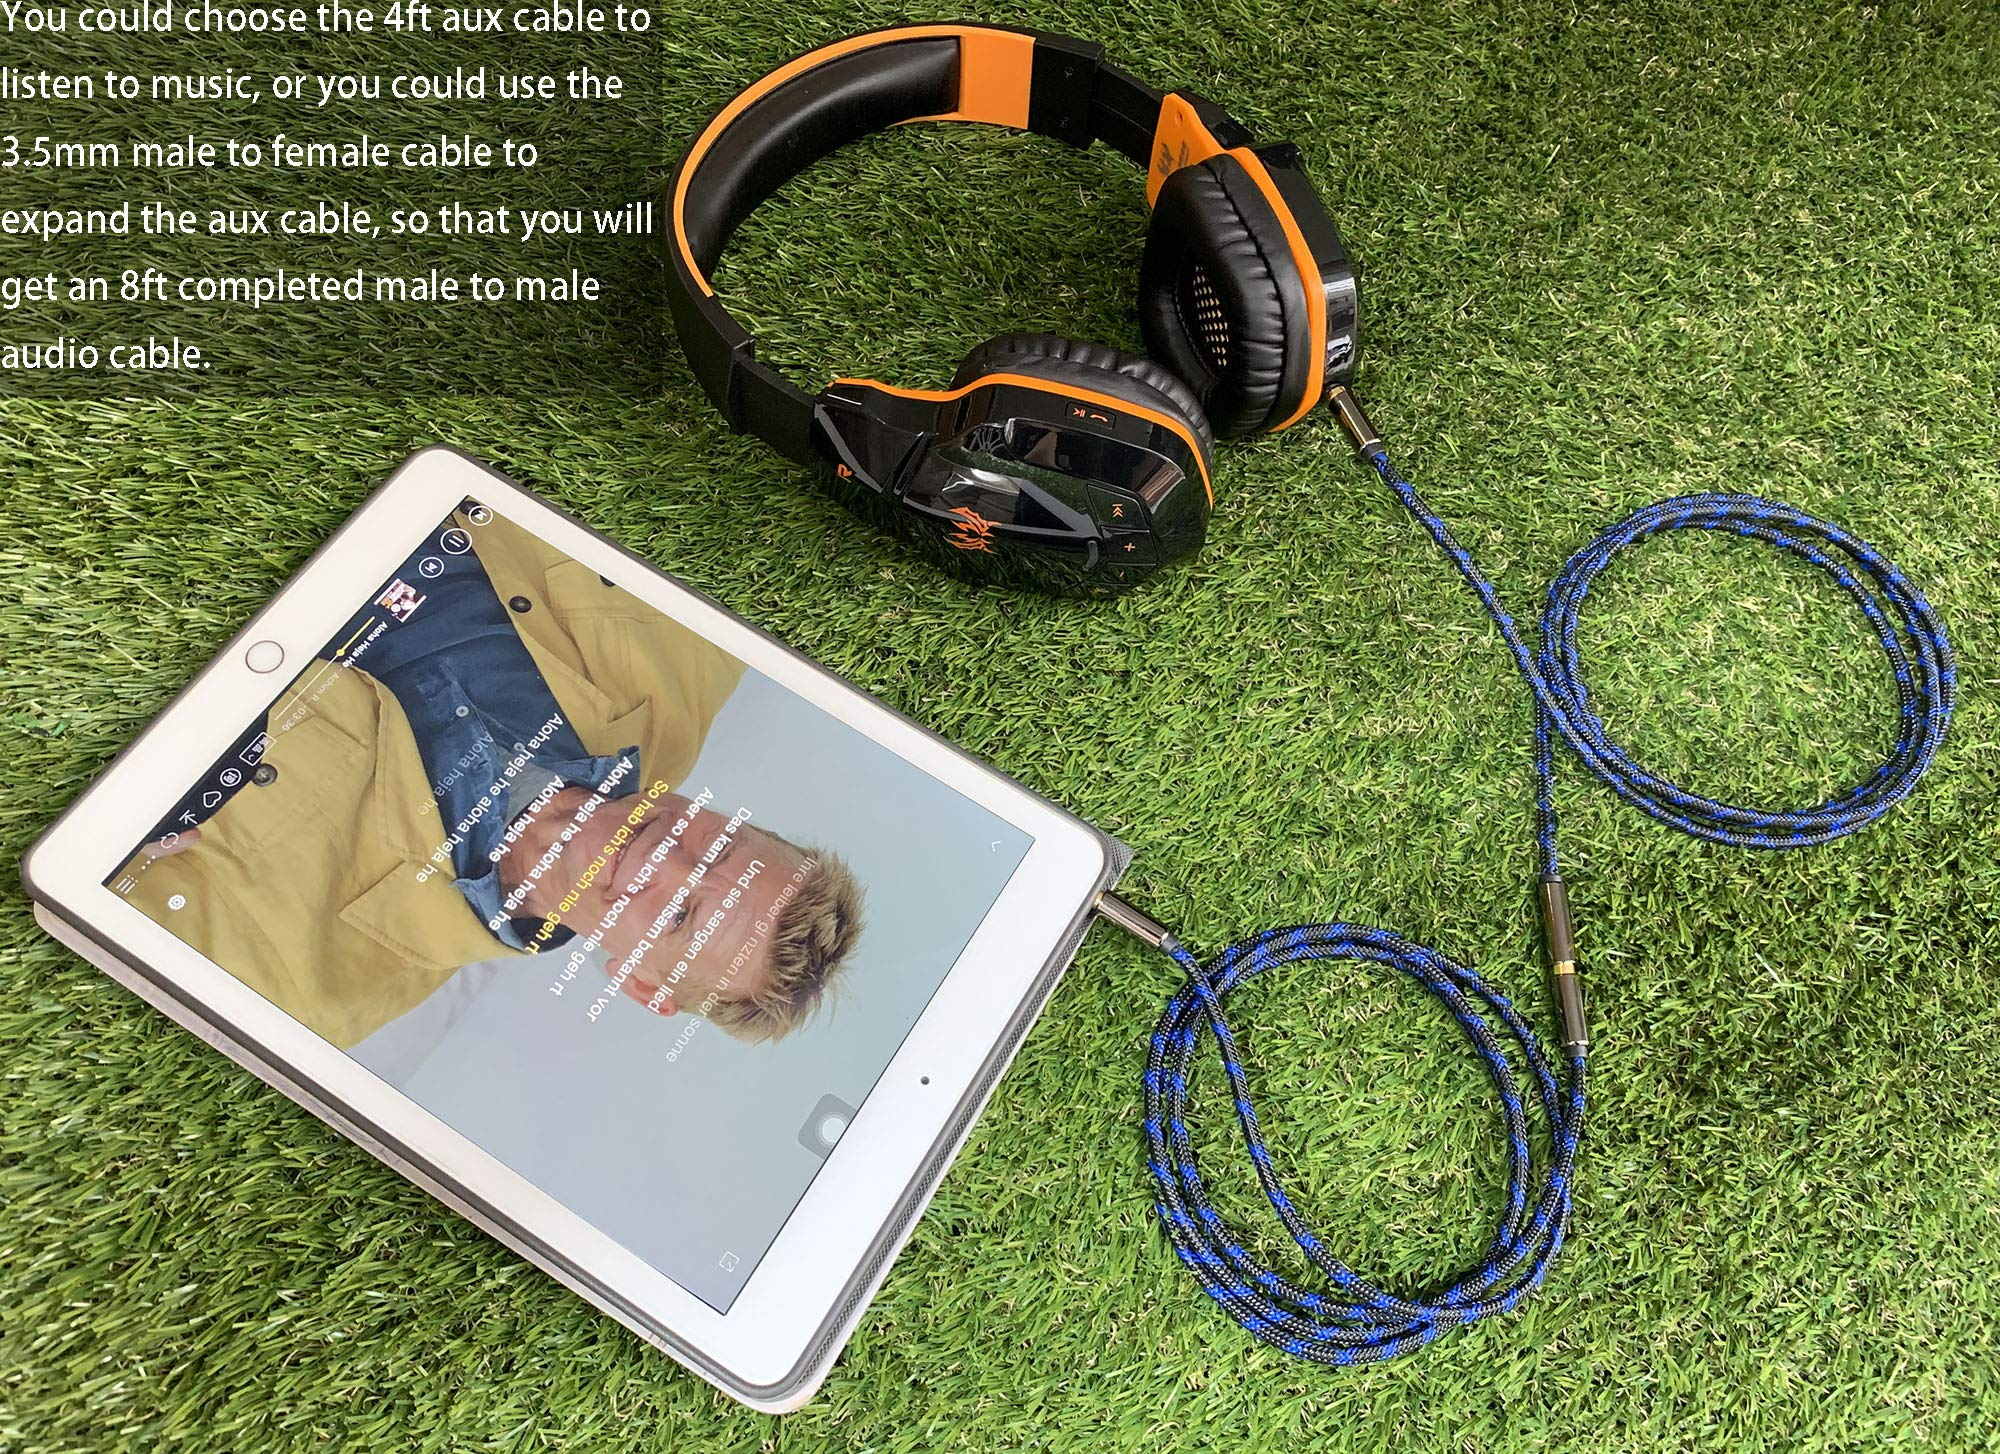 Home Stereos /& More iPhones iPods Car iPads AUX Cable 12 Feet,Ruaeoda Foil /& Braid Double Shielde 3.5mm Auxiliary Stereo Audio Cable Nylon Braided Male to Male Long AUX Cord Compatible Headphones